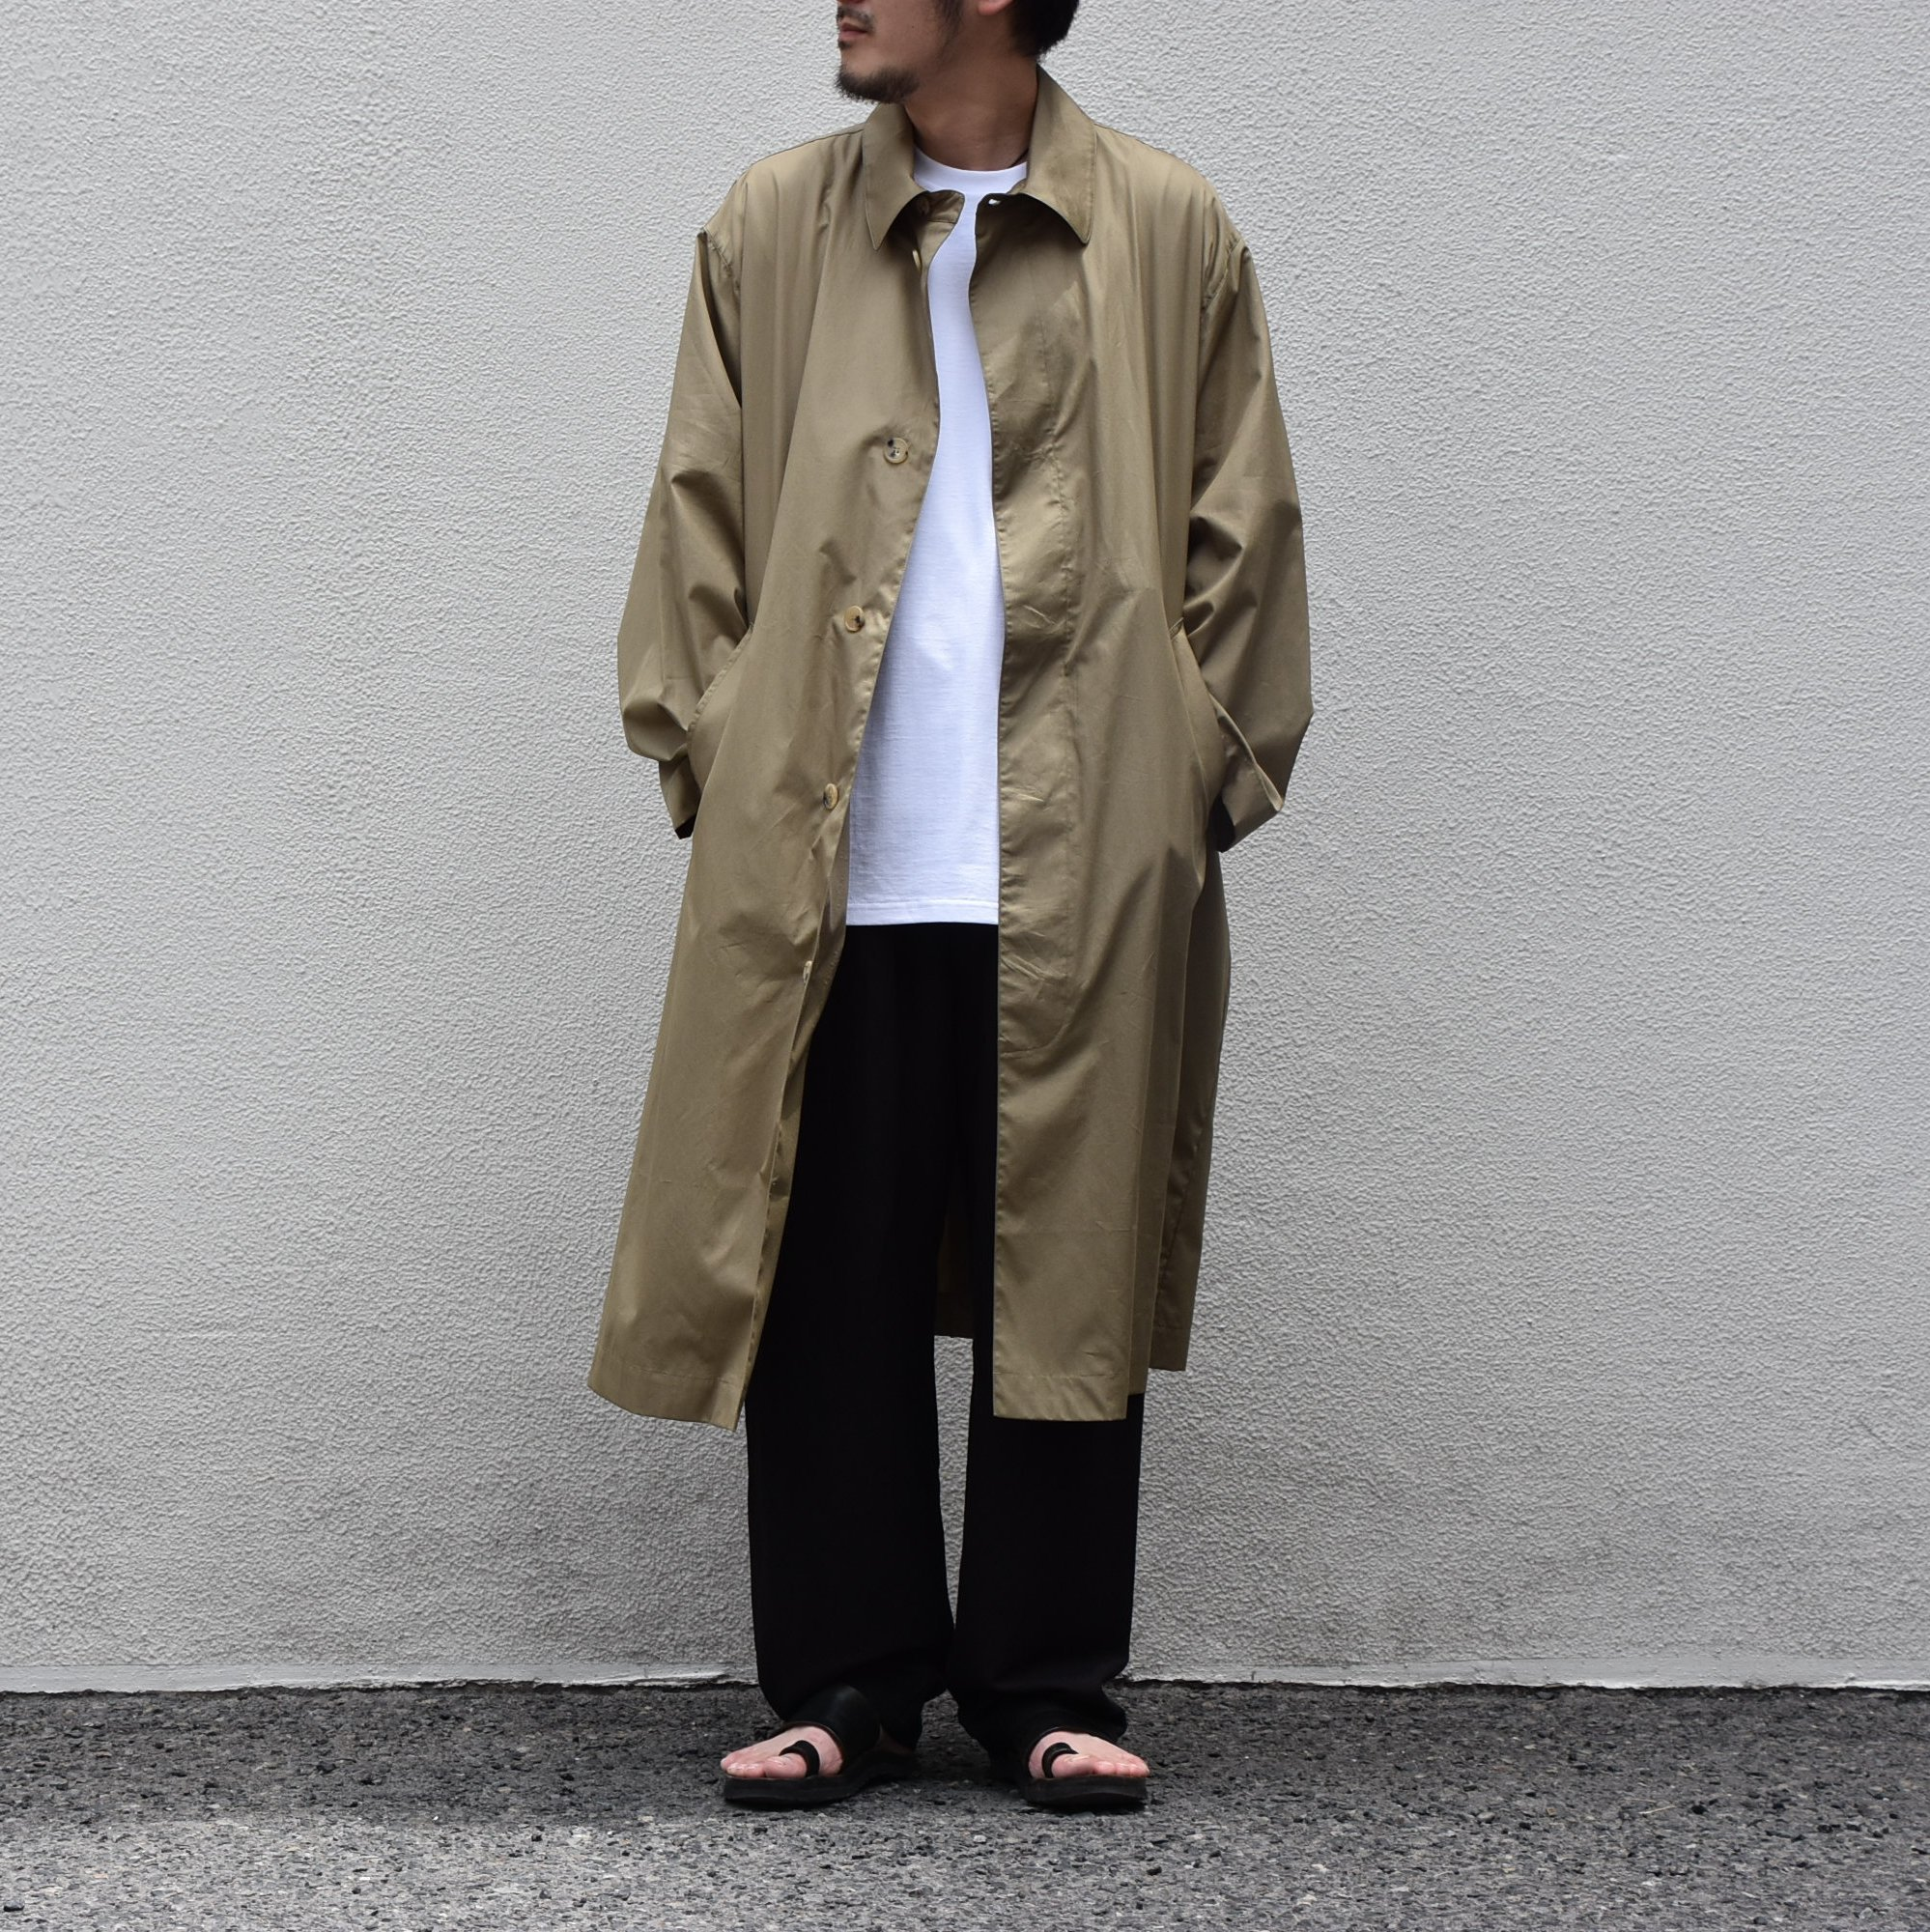 【2020】 Cristaseya(クリスタセヤ)/ OVERSIZED LIGHT COTTON SUMMER TRENCH -Light khaki- #01DA-C-LK(9)